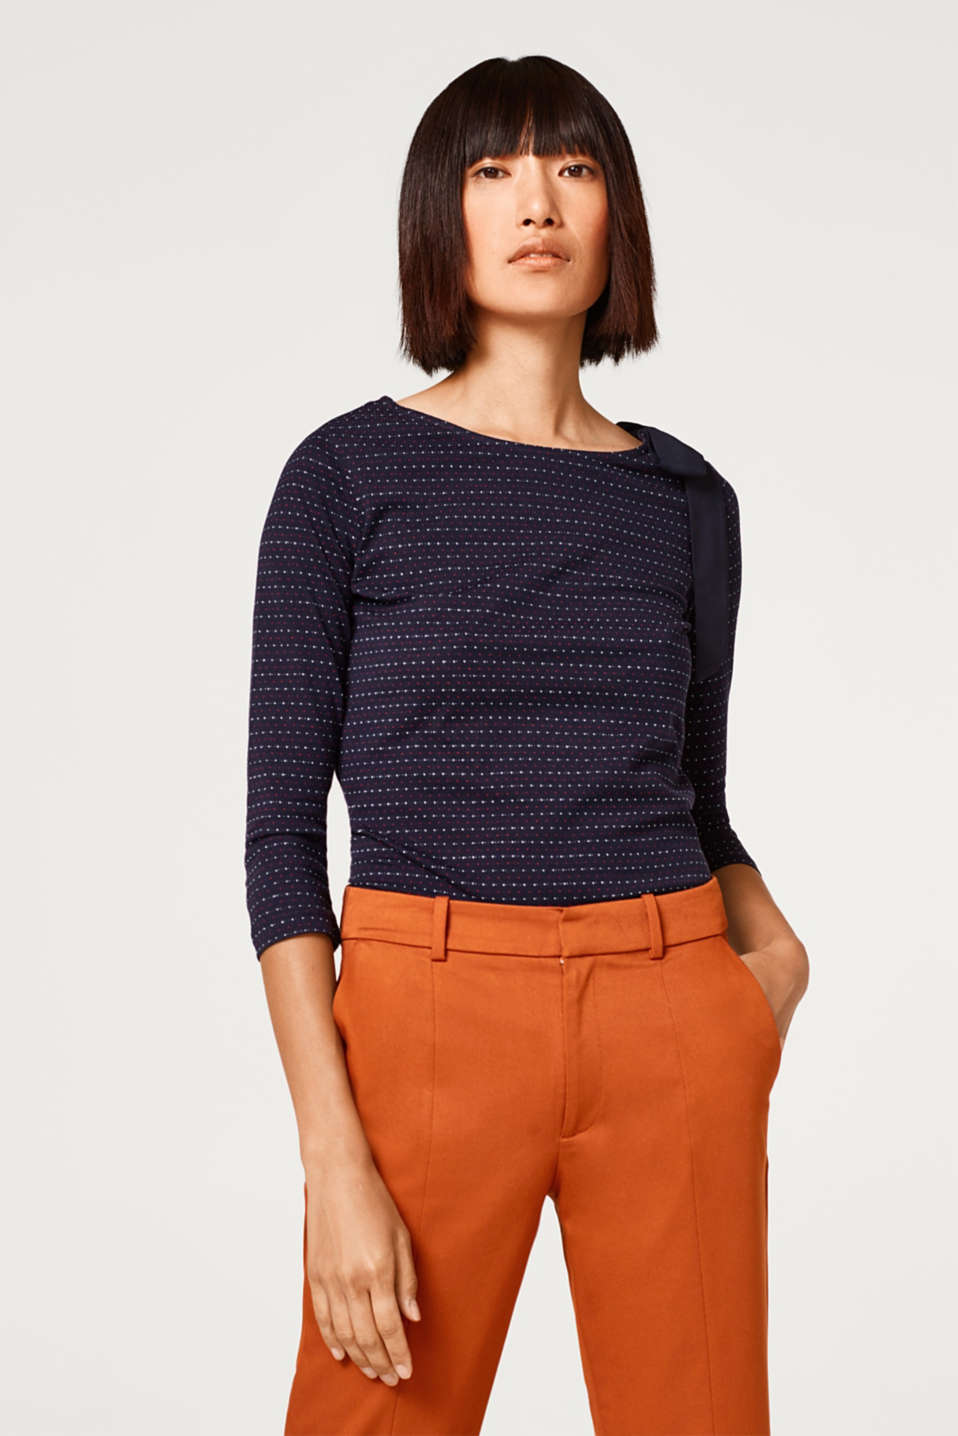 Esprit - Textured jersey top with a bow